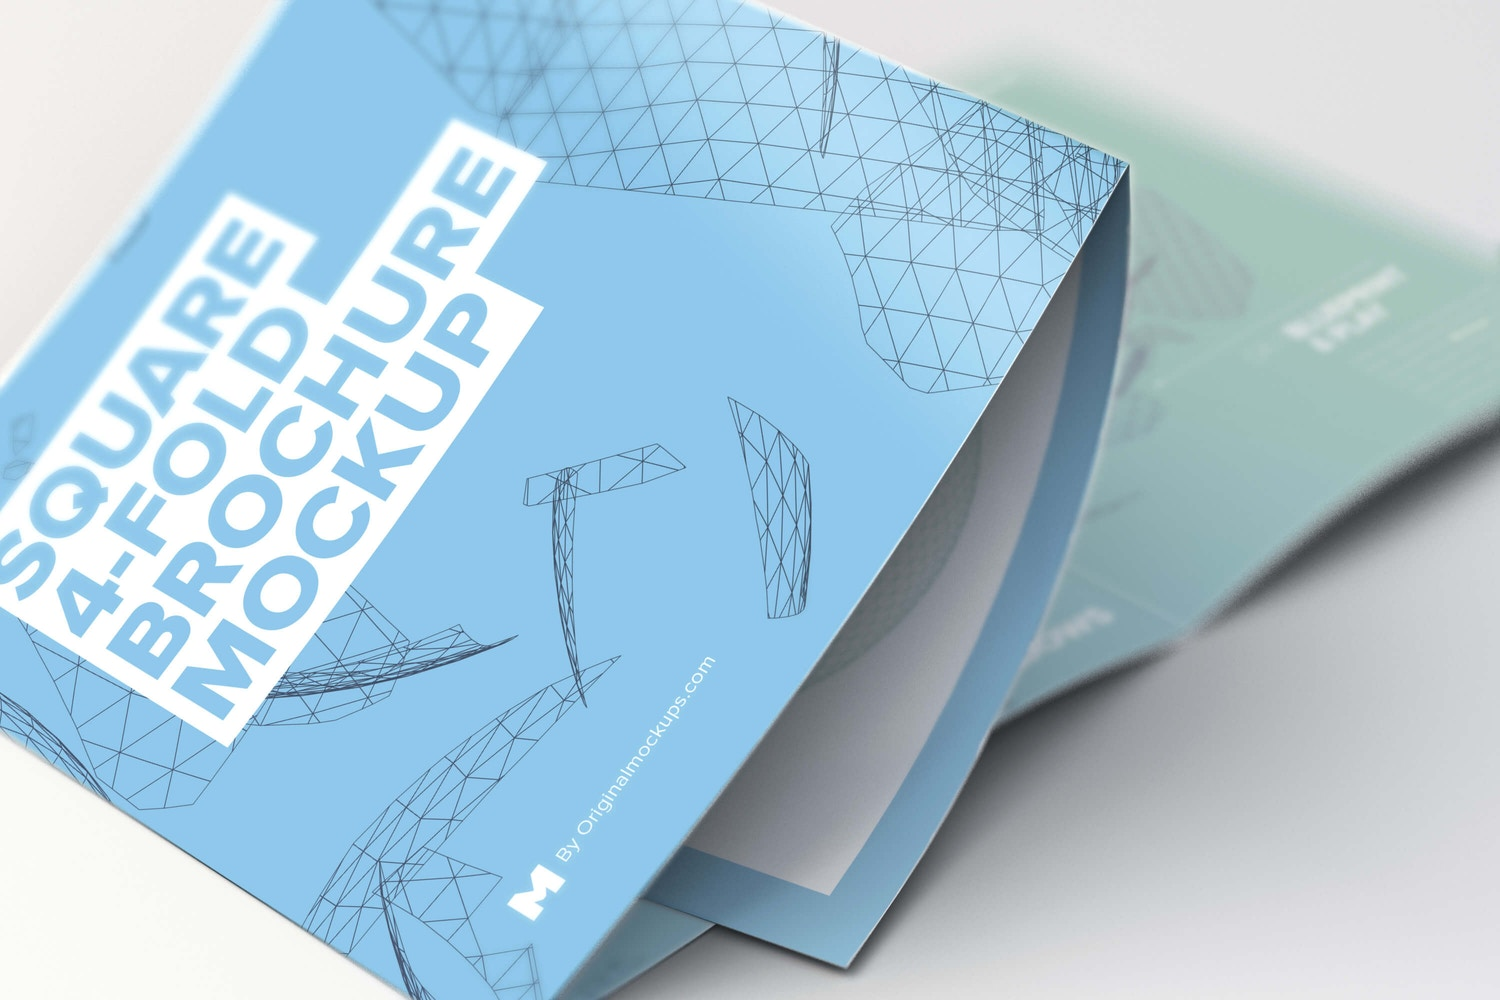 Unfolding Square 4-Fold Brochure Close Up Mockup por Original Mockups en Original Mockups